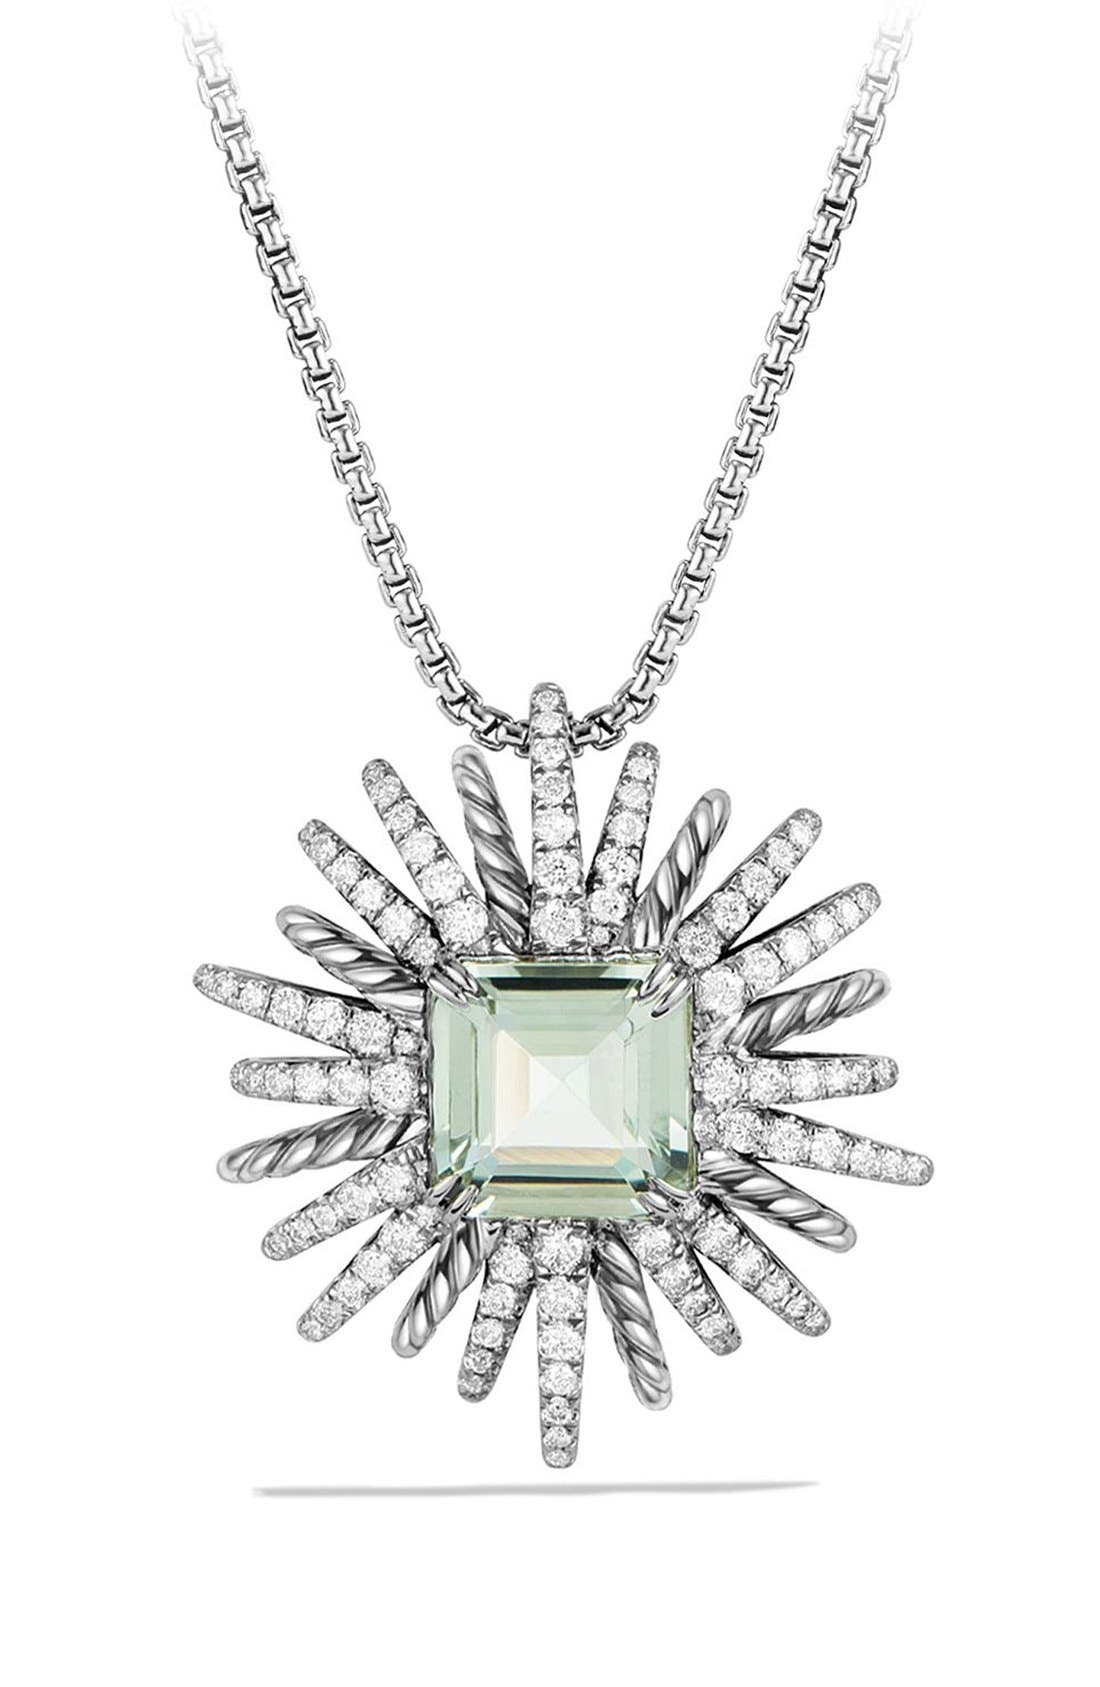 Main Image - David Yurman 'Starburst' Necklace with Diamonds in Silver